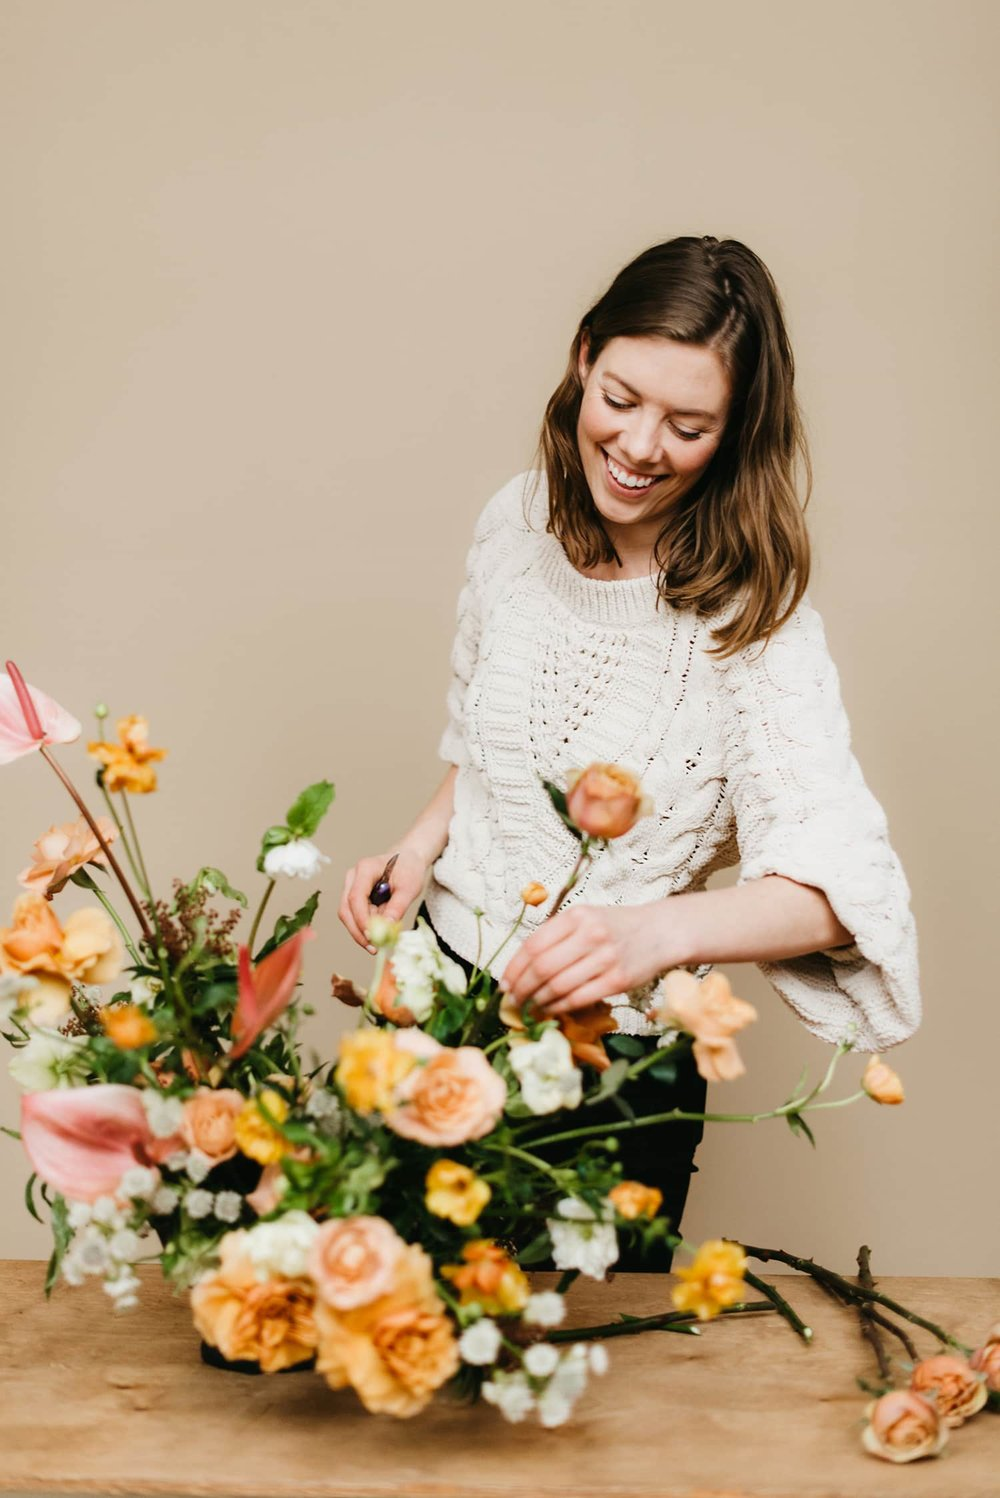 Portland Florist Color Theory Collective Designs A Flower Arrangement for Delivery